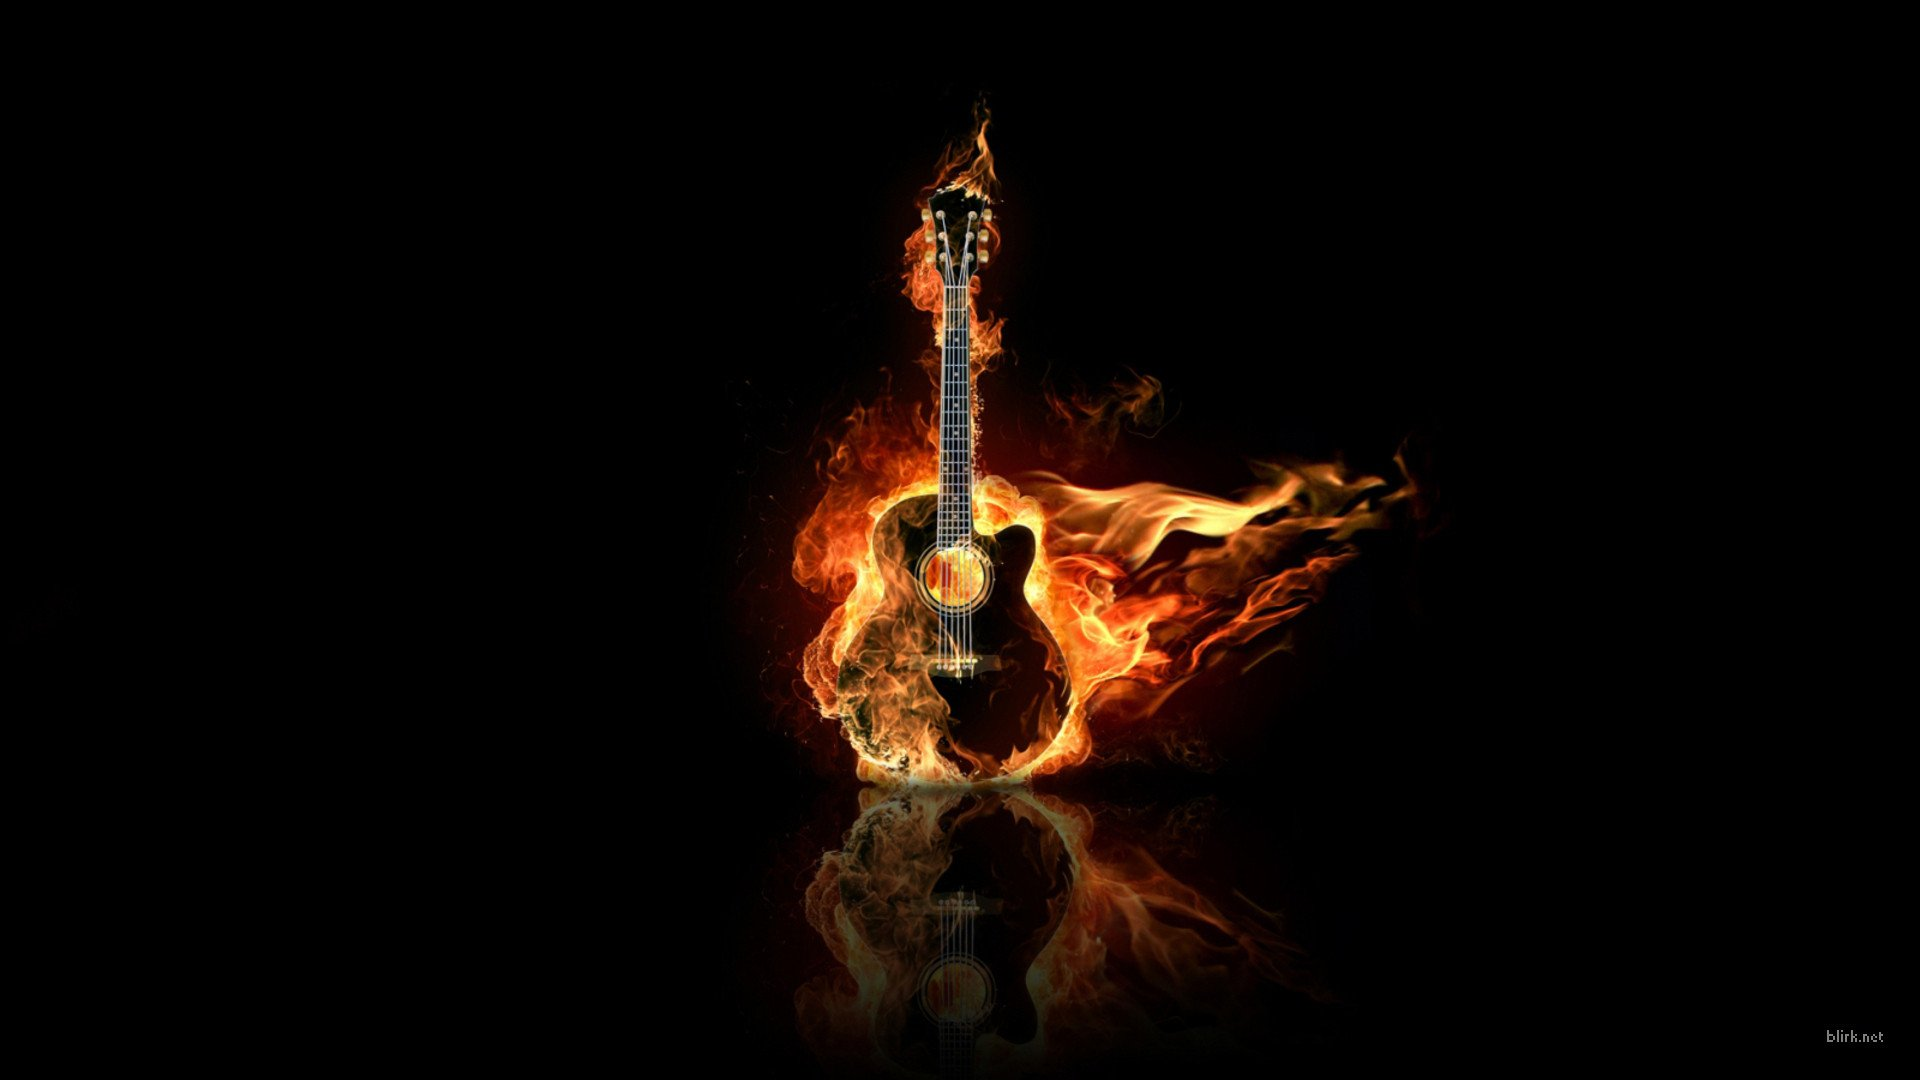 Cool Guitar Wallpapers 8658 Hd Wallpapers in Music   Imagescicom 1920x1080